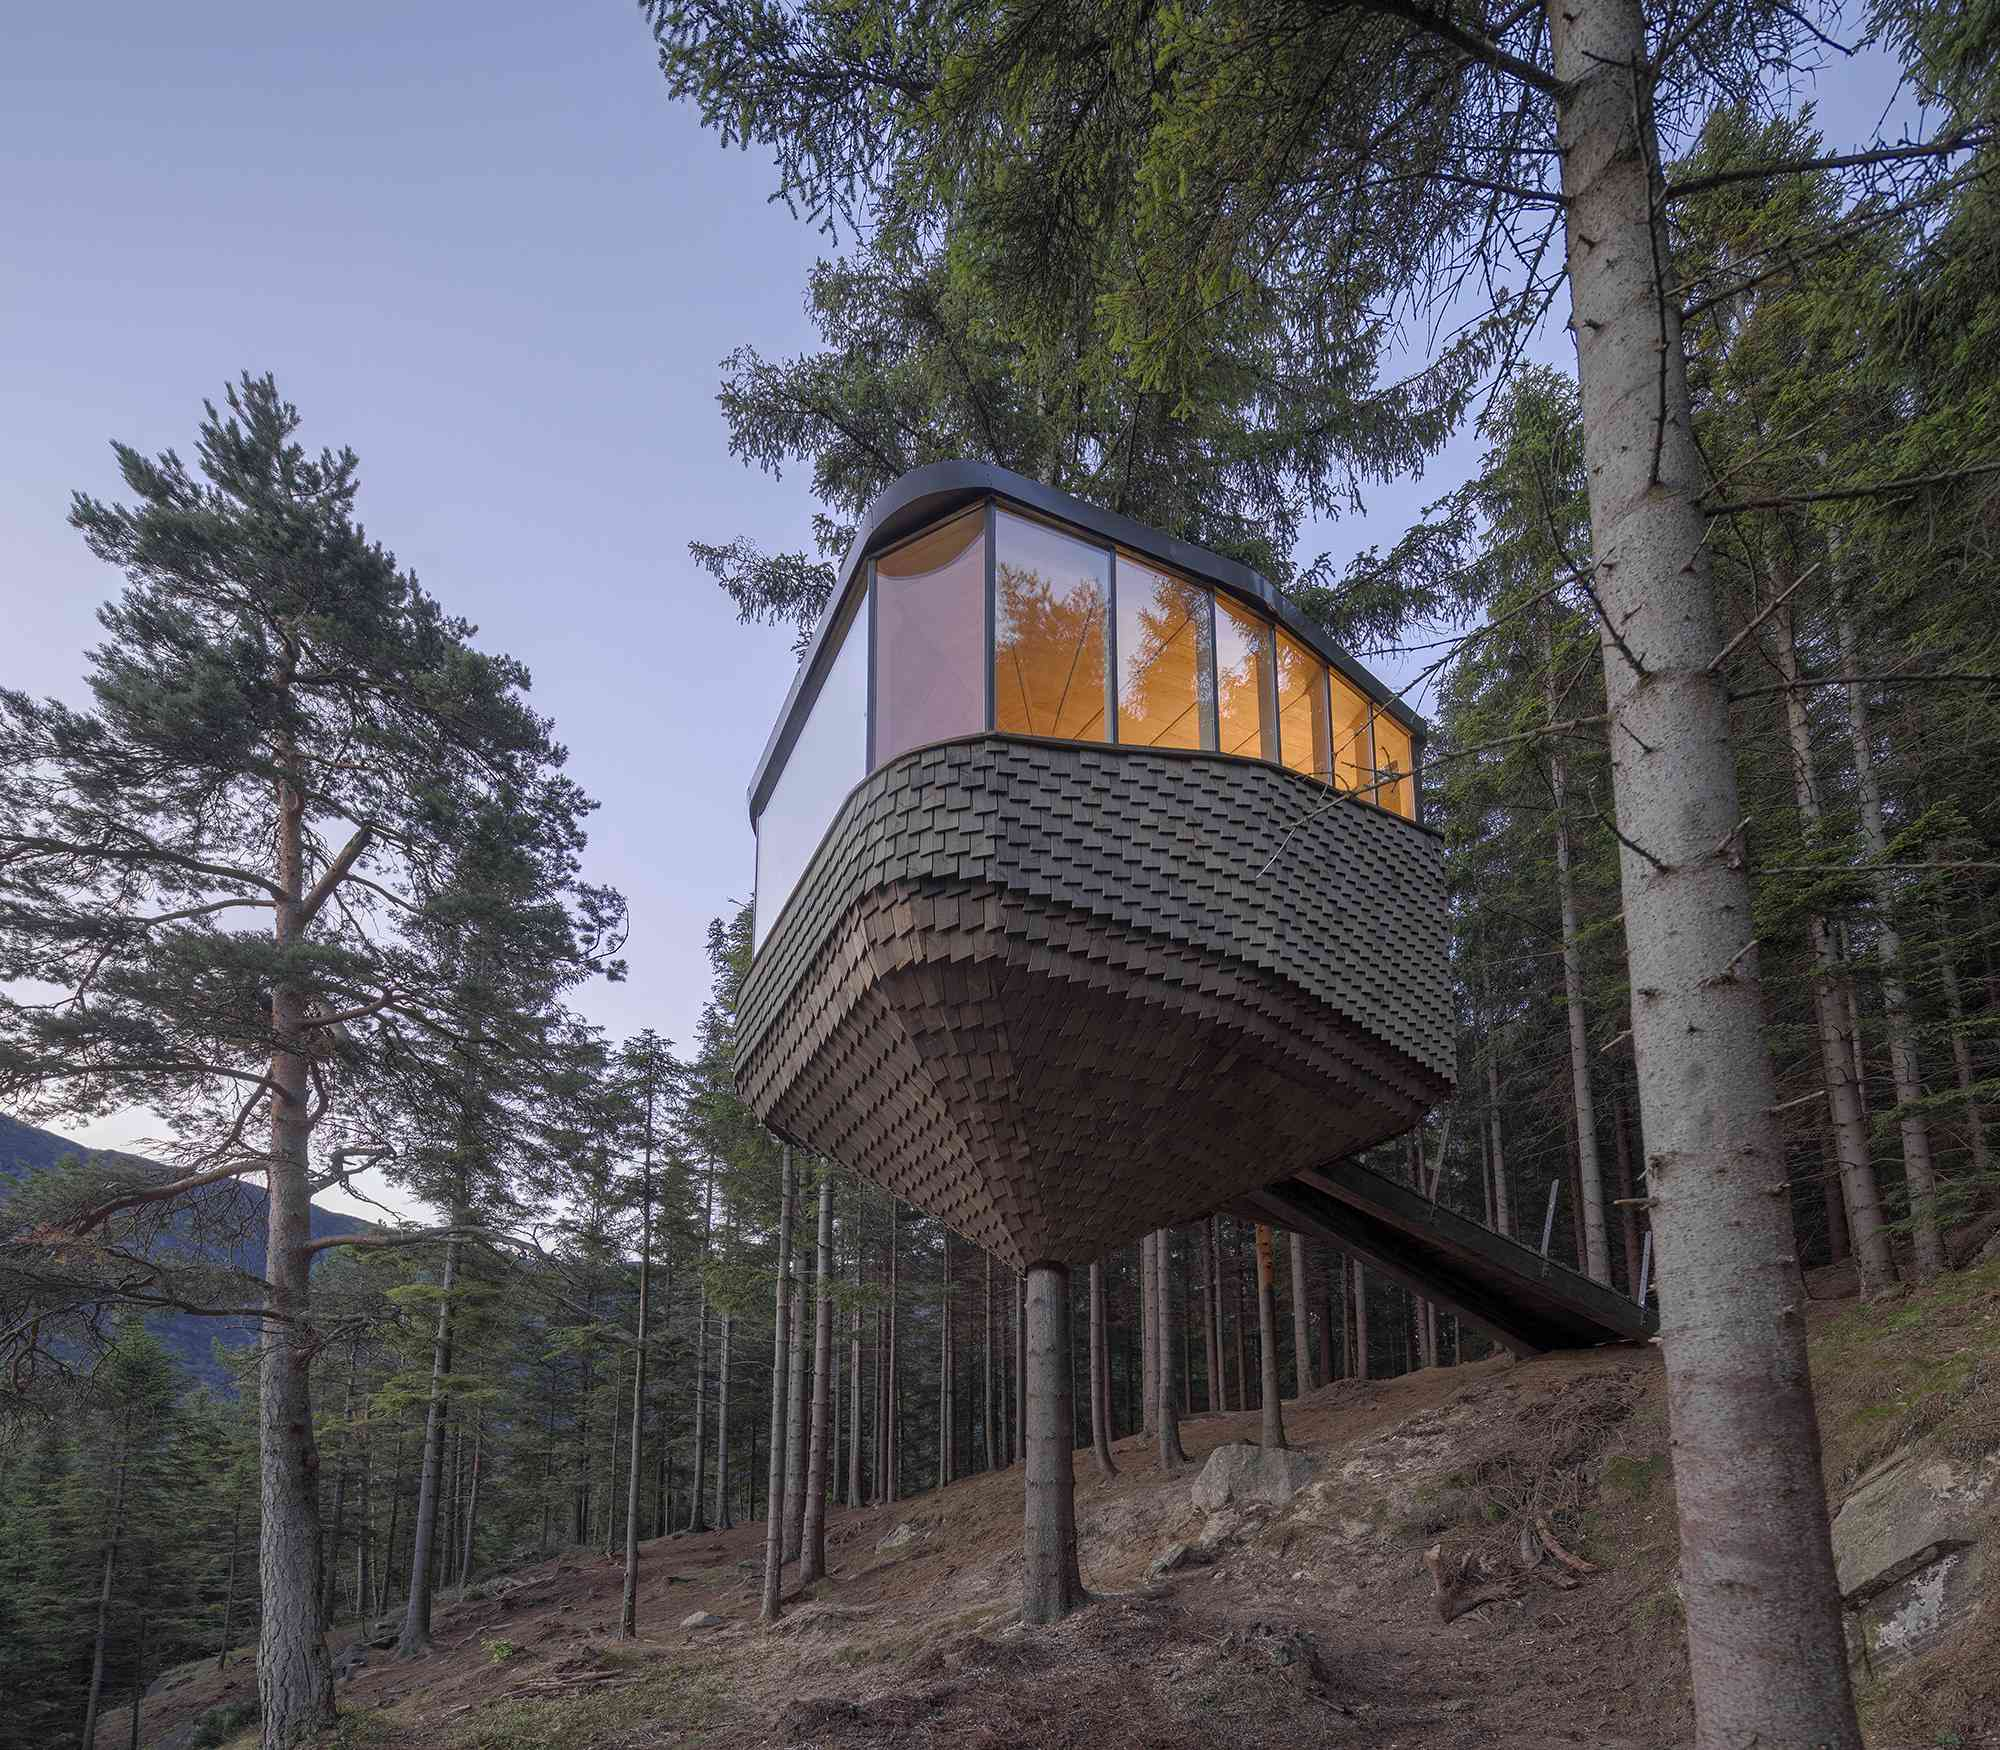 Woodnest treehouse cabin by Helen & Hard Architects exterior